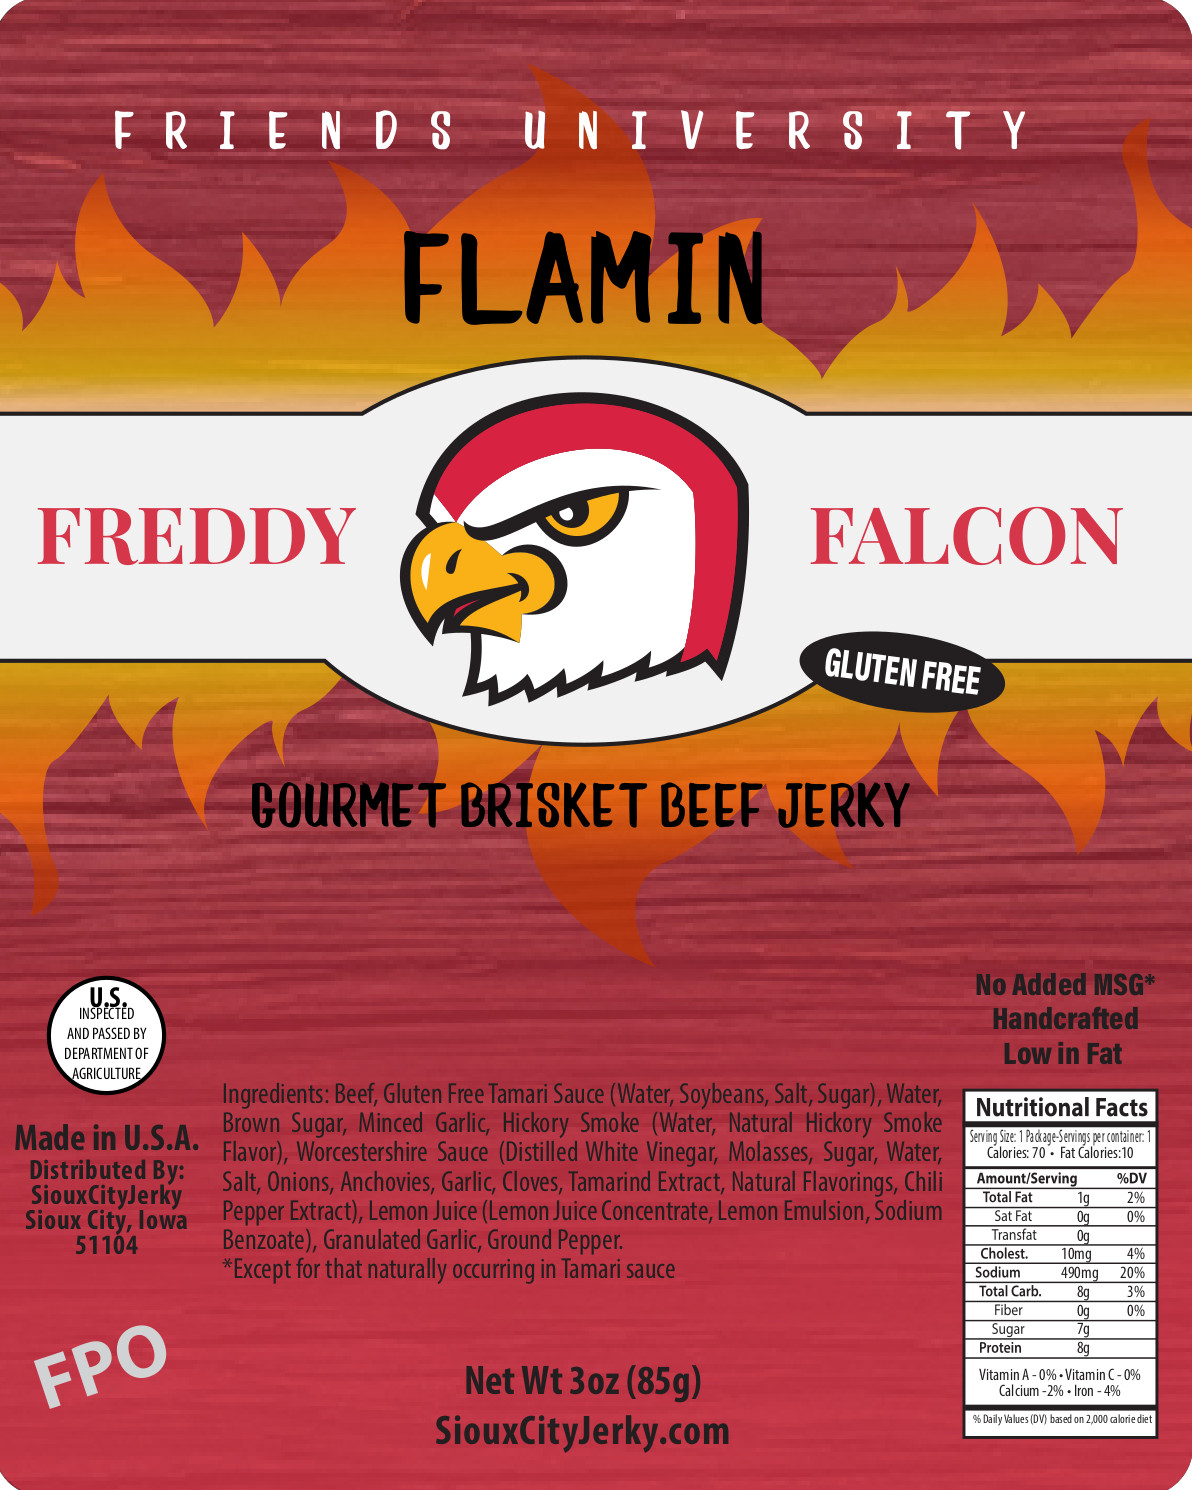 Freddy Falcon Flaming Beef Jerky